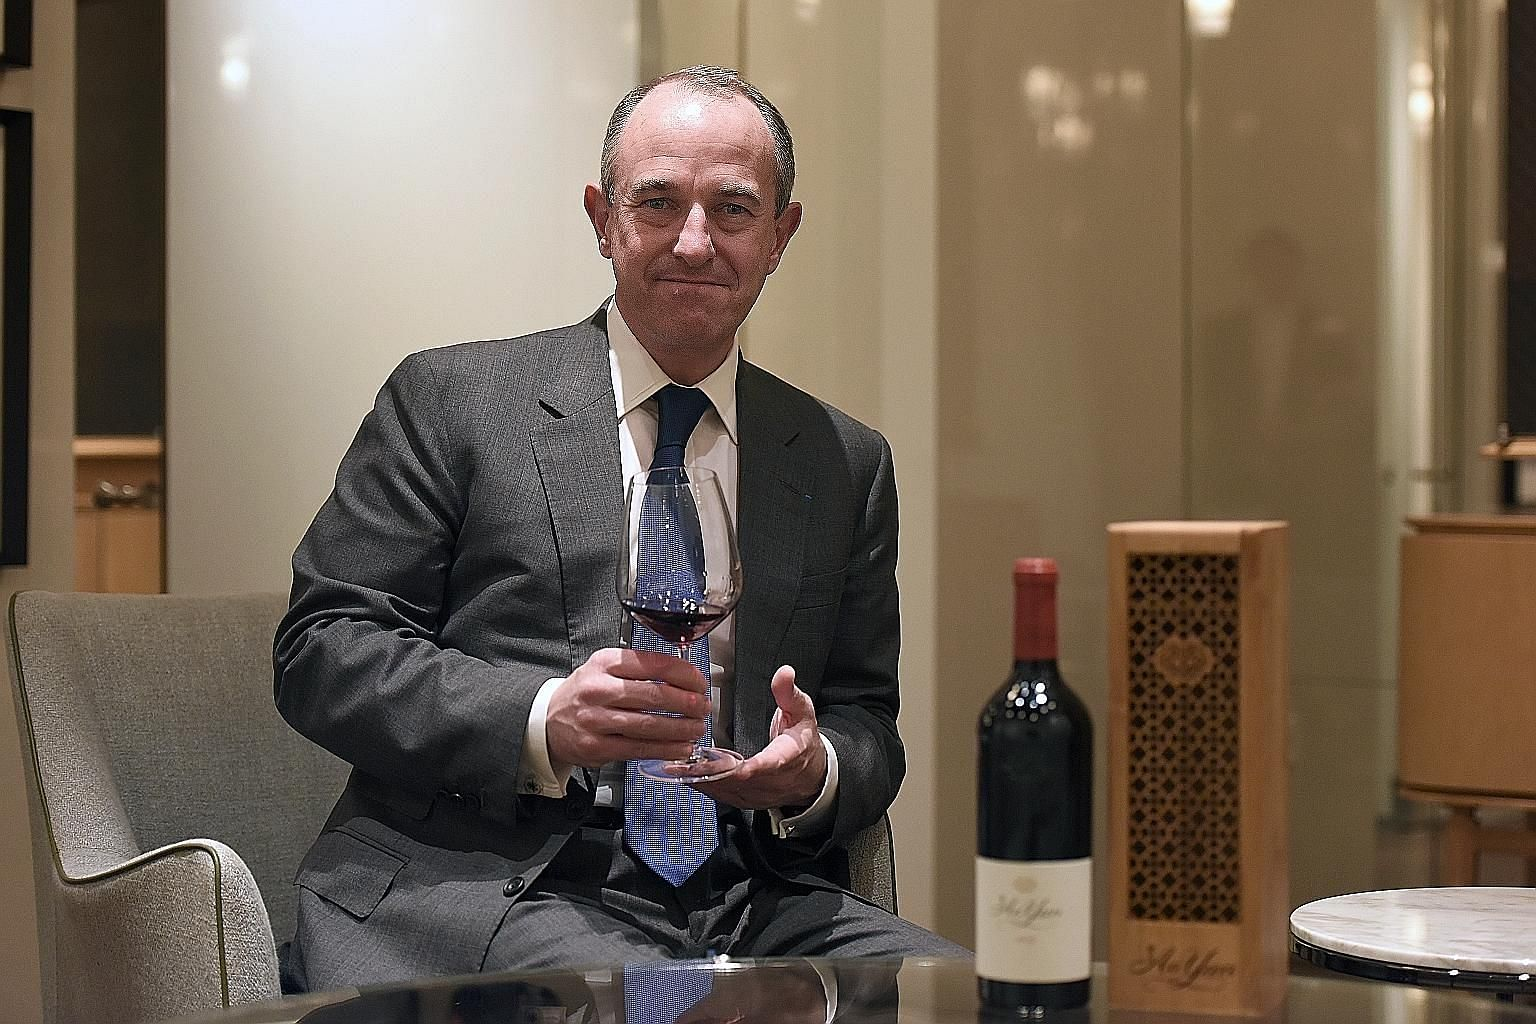 Mr Jean-Guillaume Prats, president and chief executive of Estates and Wines at Moet Hennessy, was in Singapore last month to launch the debut 2013 vintage of Ao Yun.